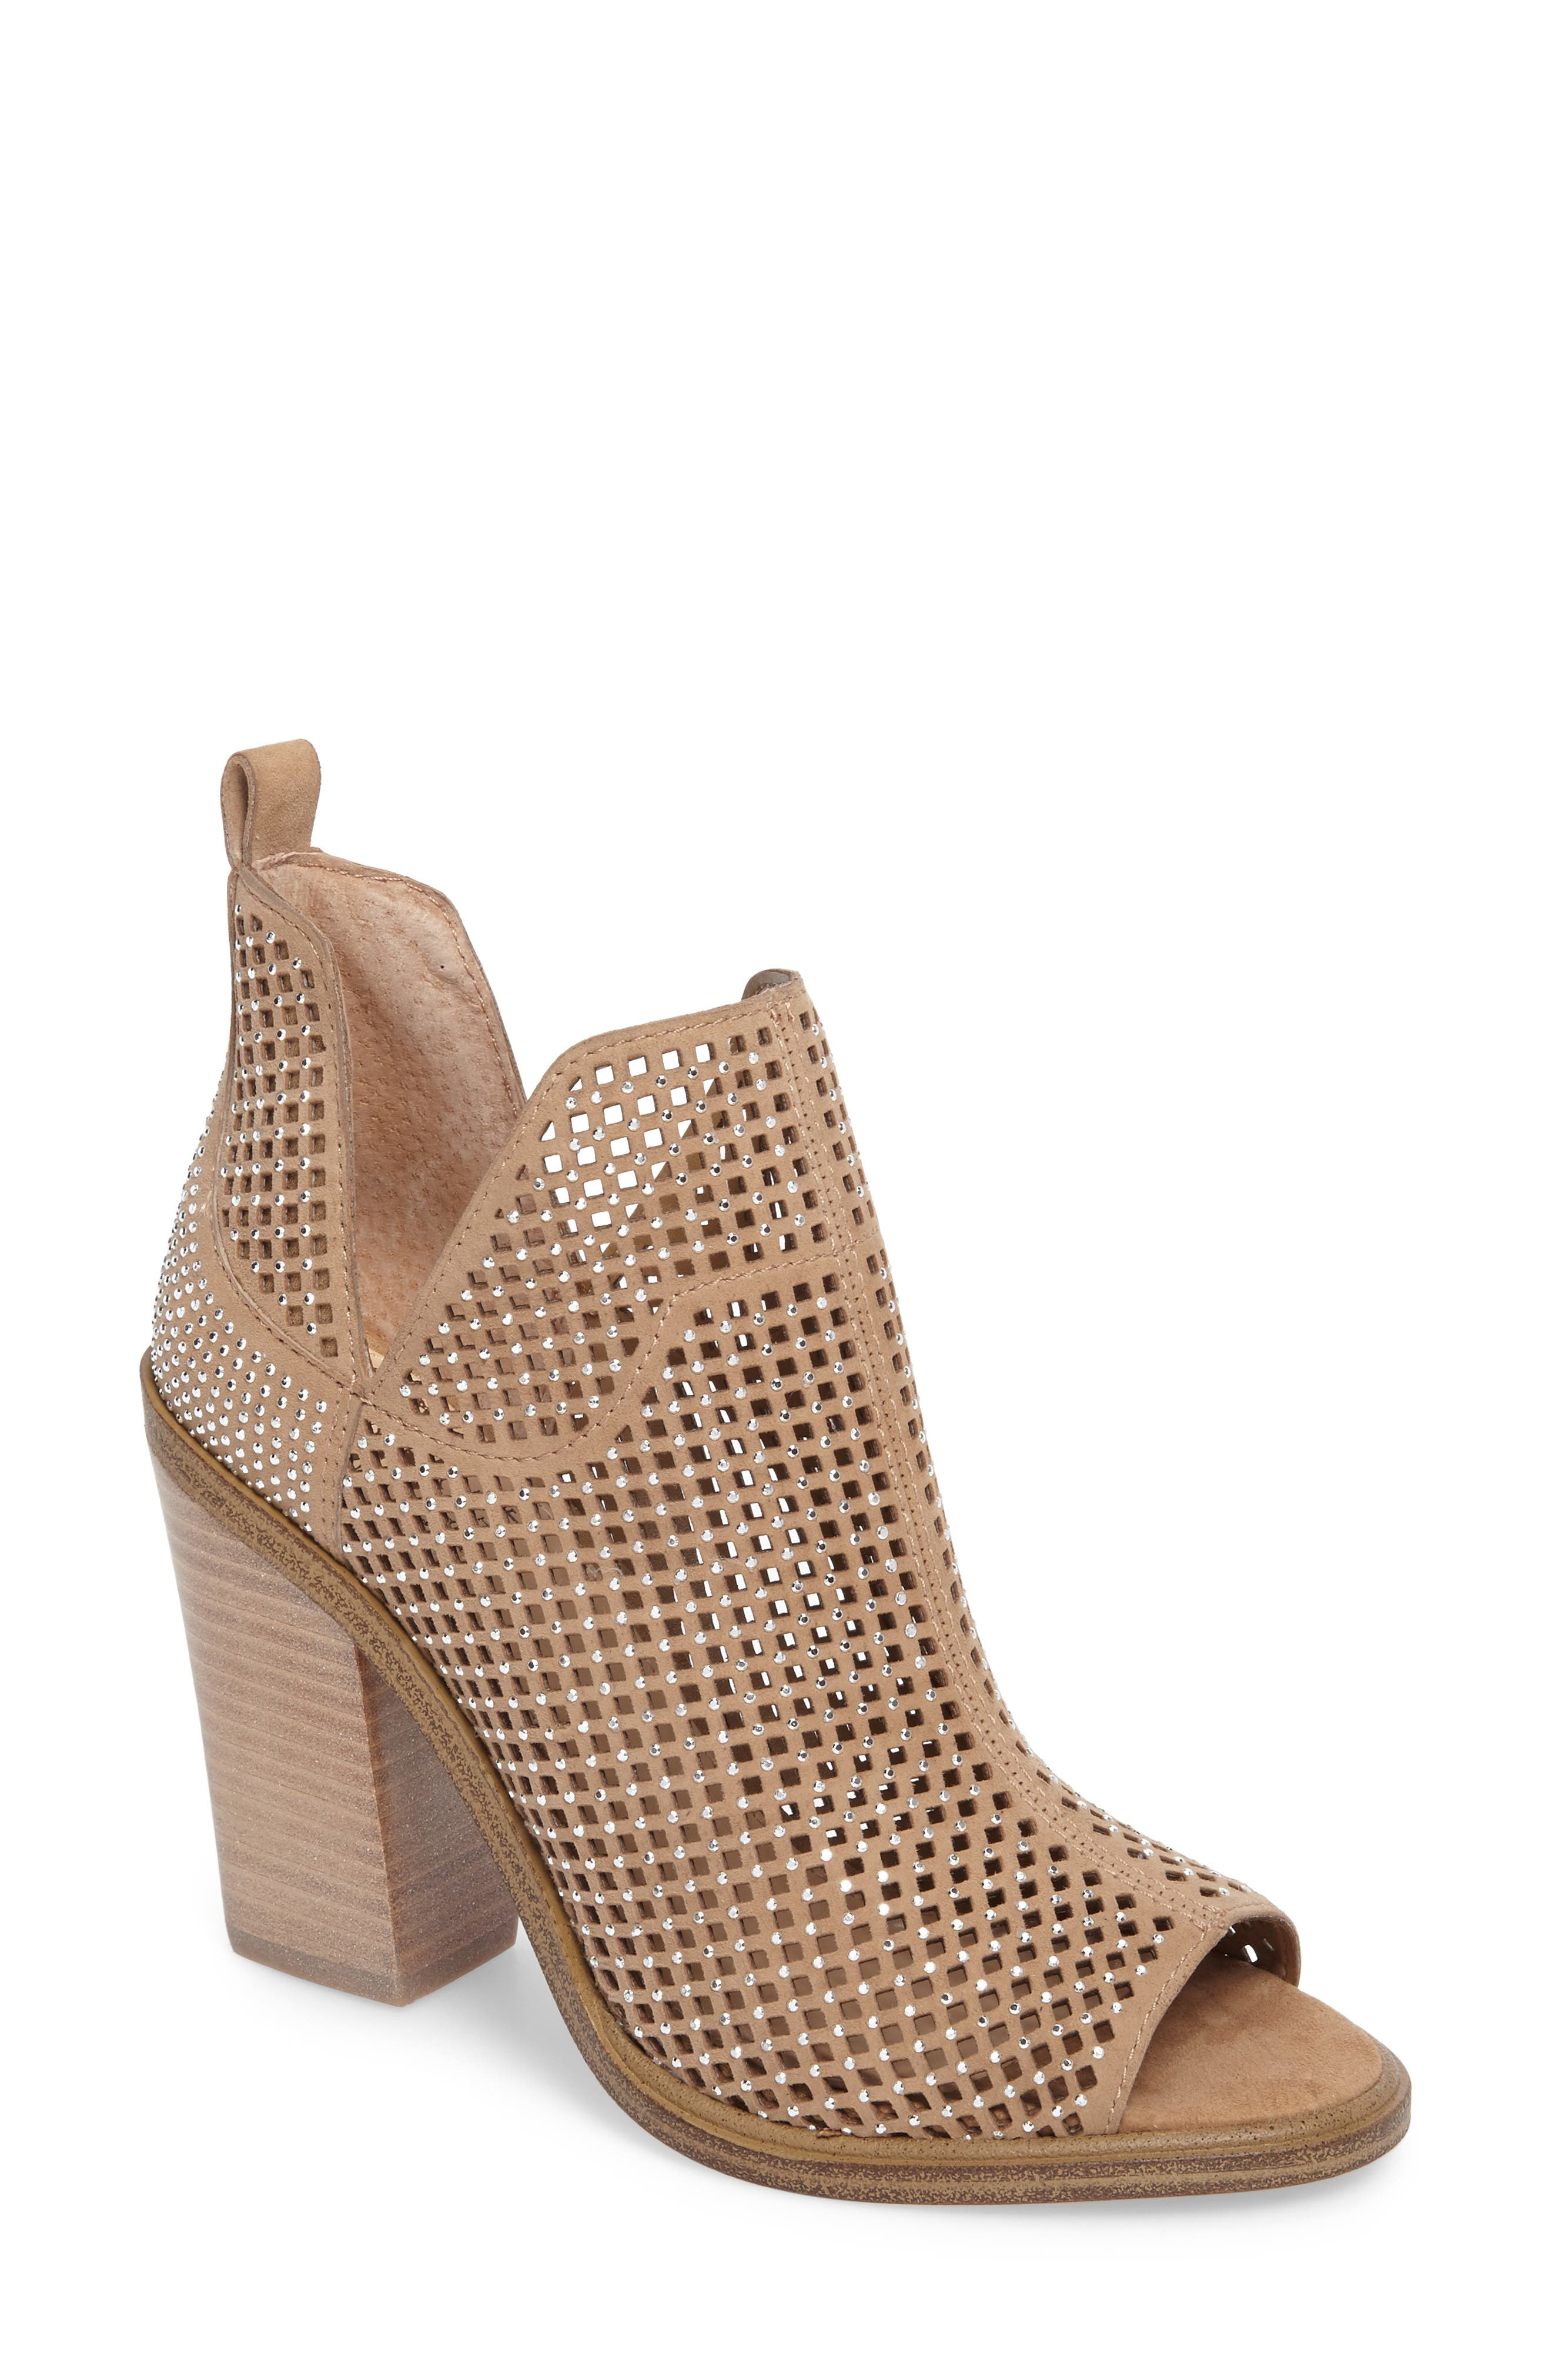 Alternate Image 1 Selected - Vince Camuto Kiminni Open Toe Bootie (Women)